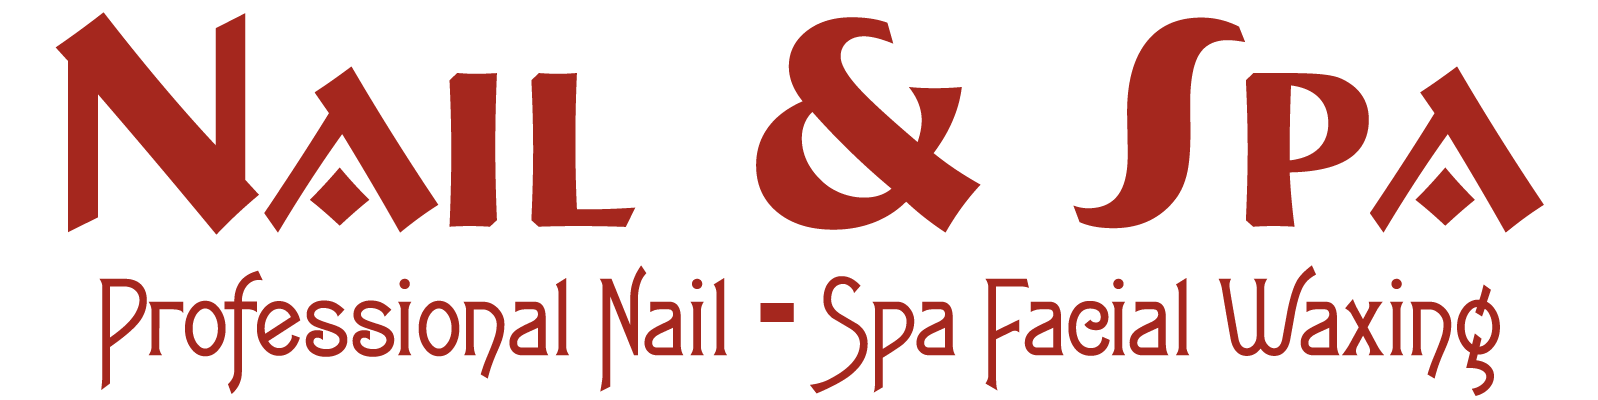 Nail & Spa | Best nail salon in Virginia Beach VA 23464